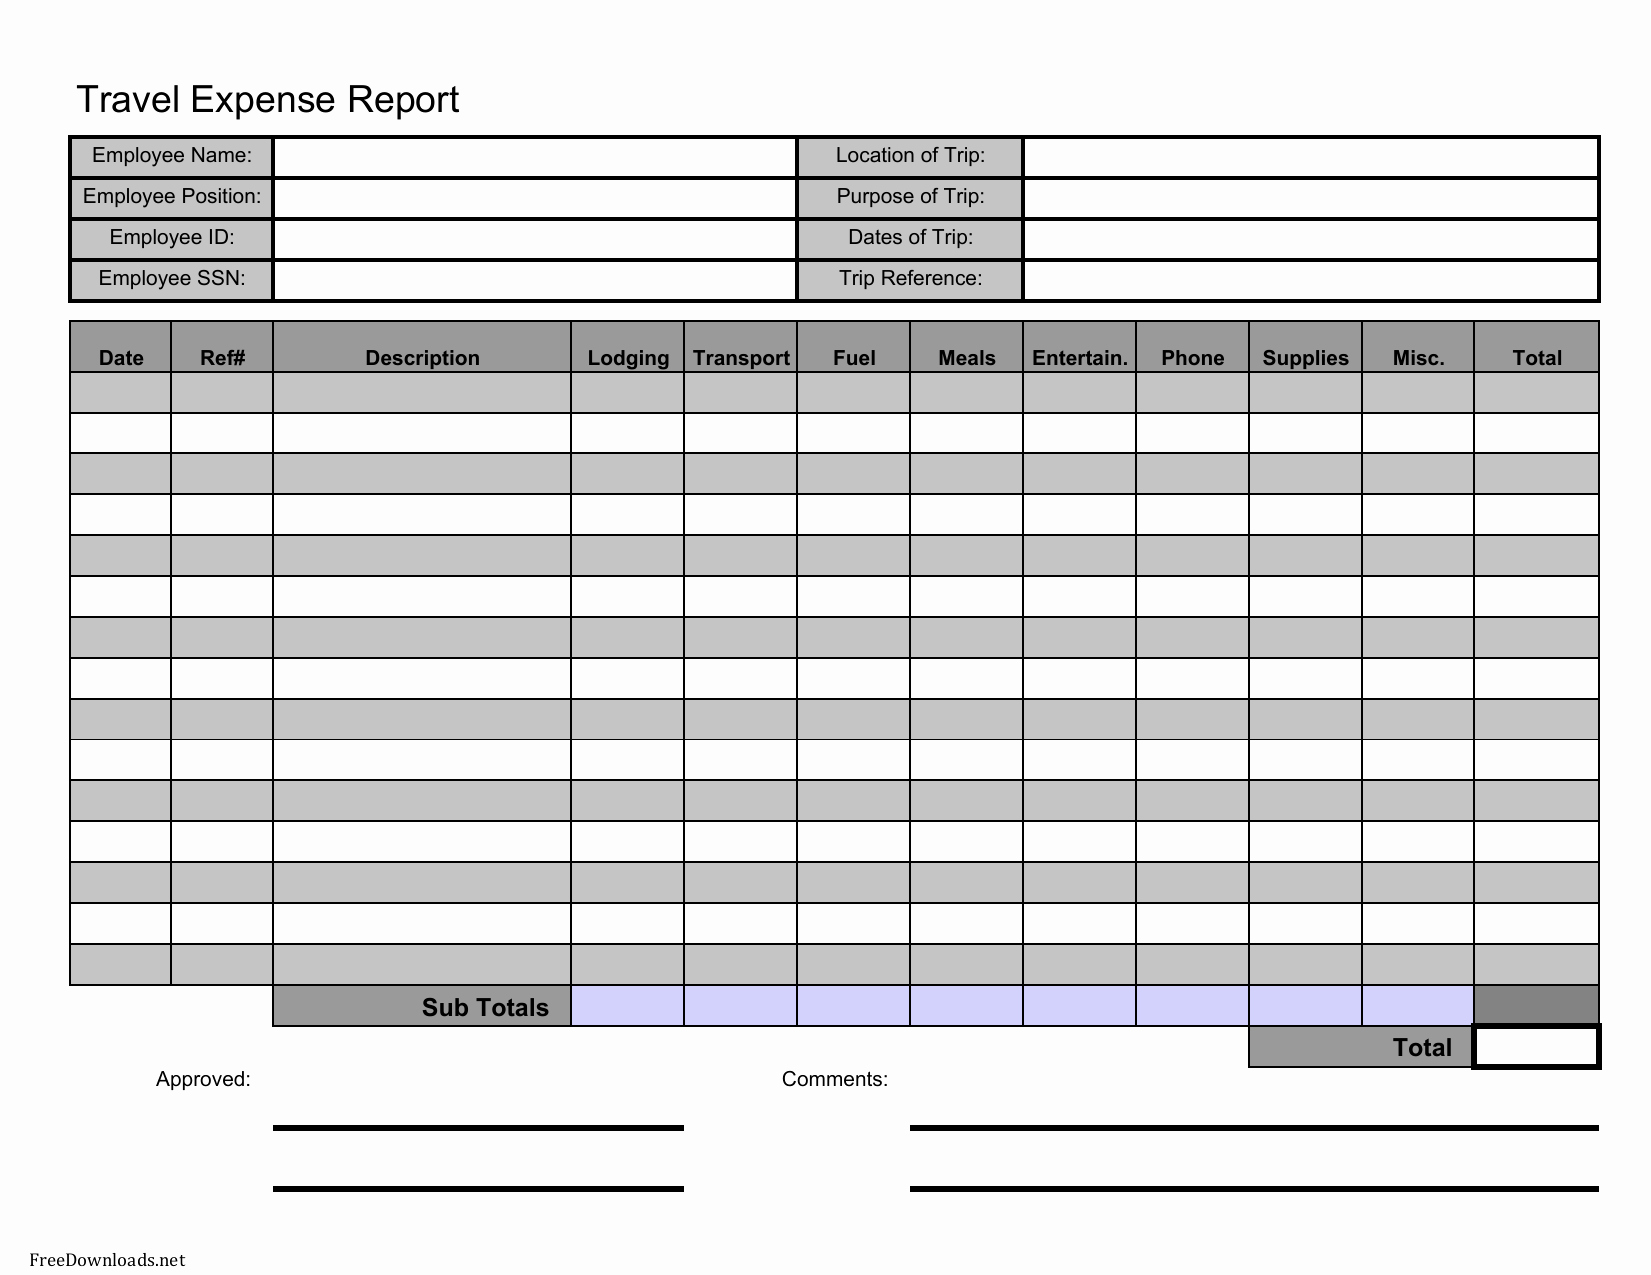 Expense Report Template Word Unique Download Travel Expense Report Template Excel